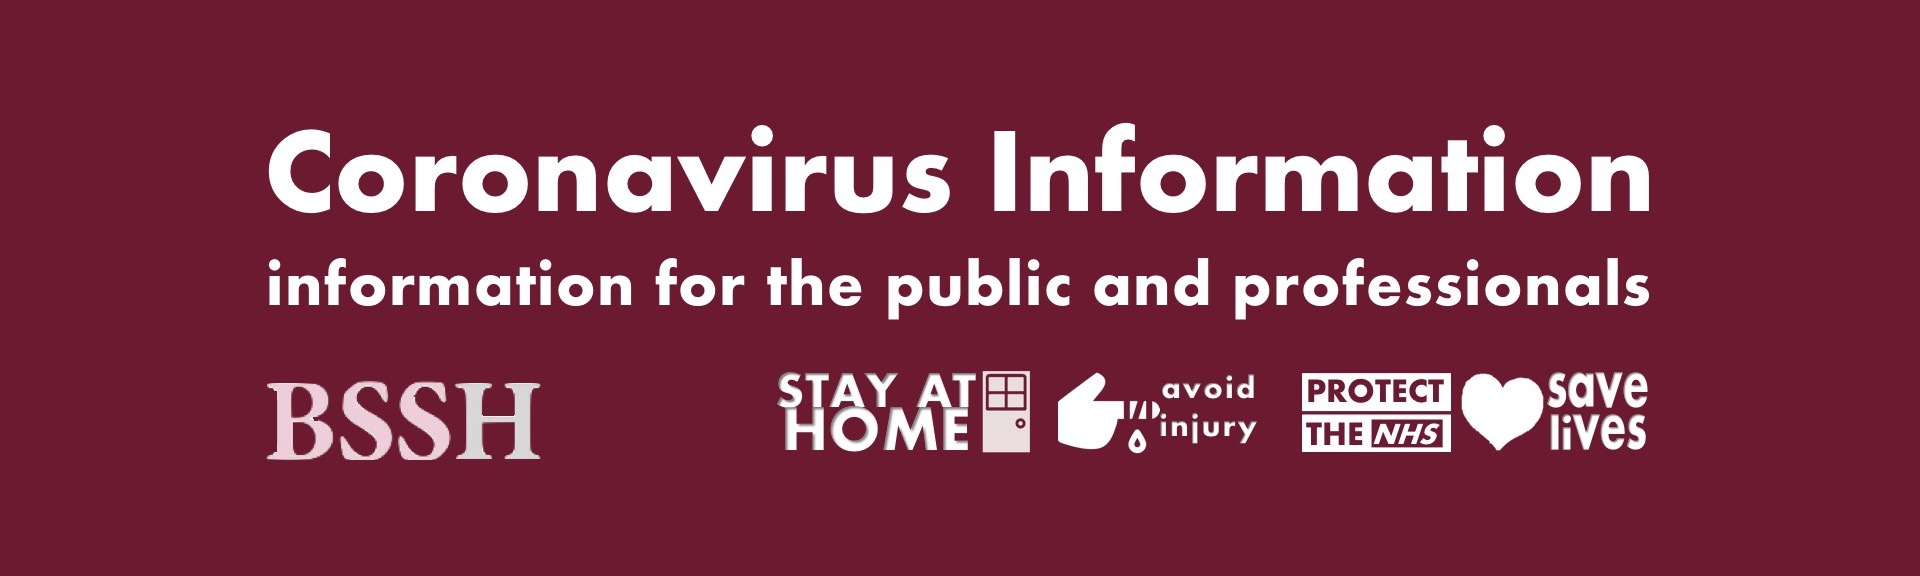 Coronavirus Information - resources for the public and professionals